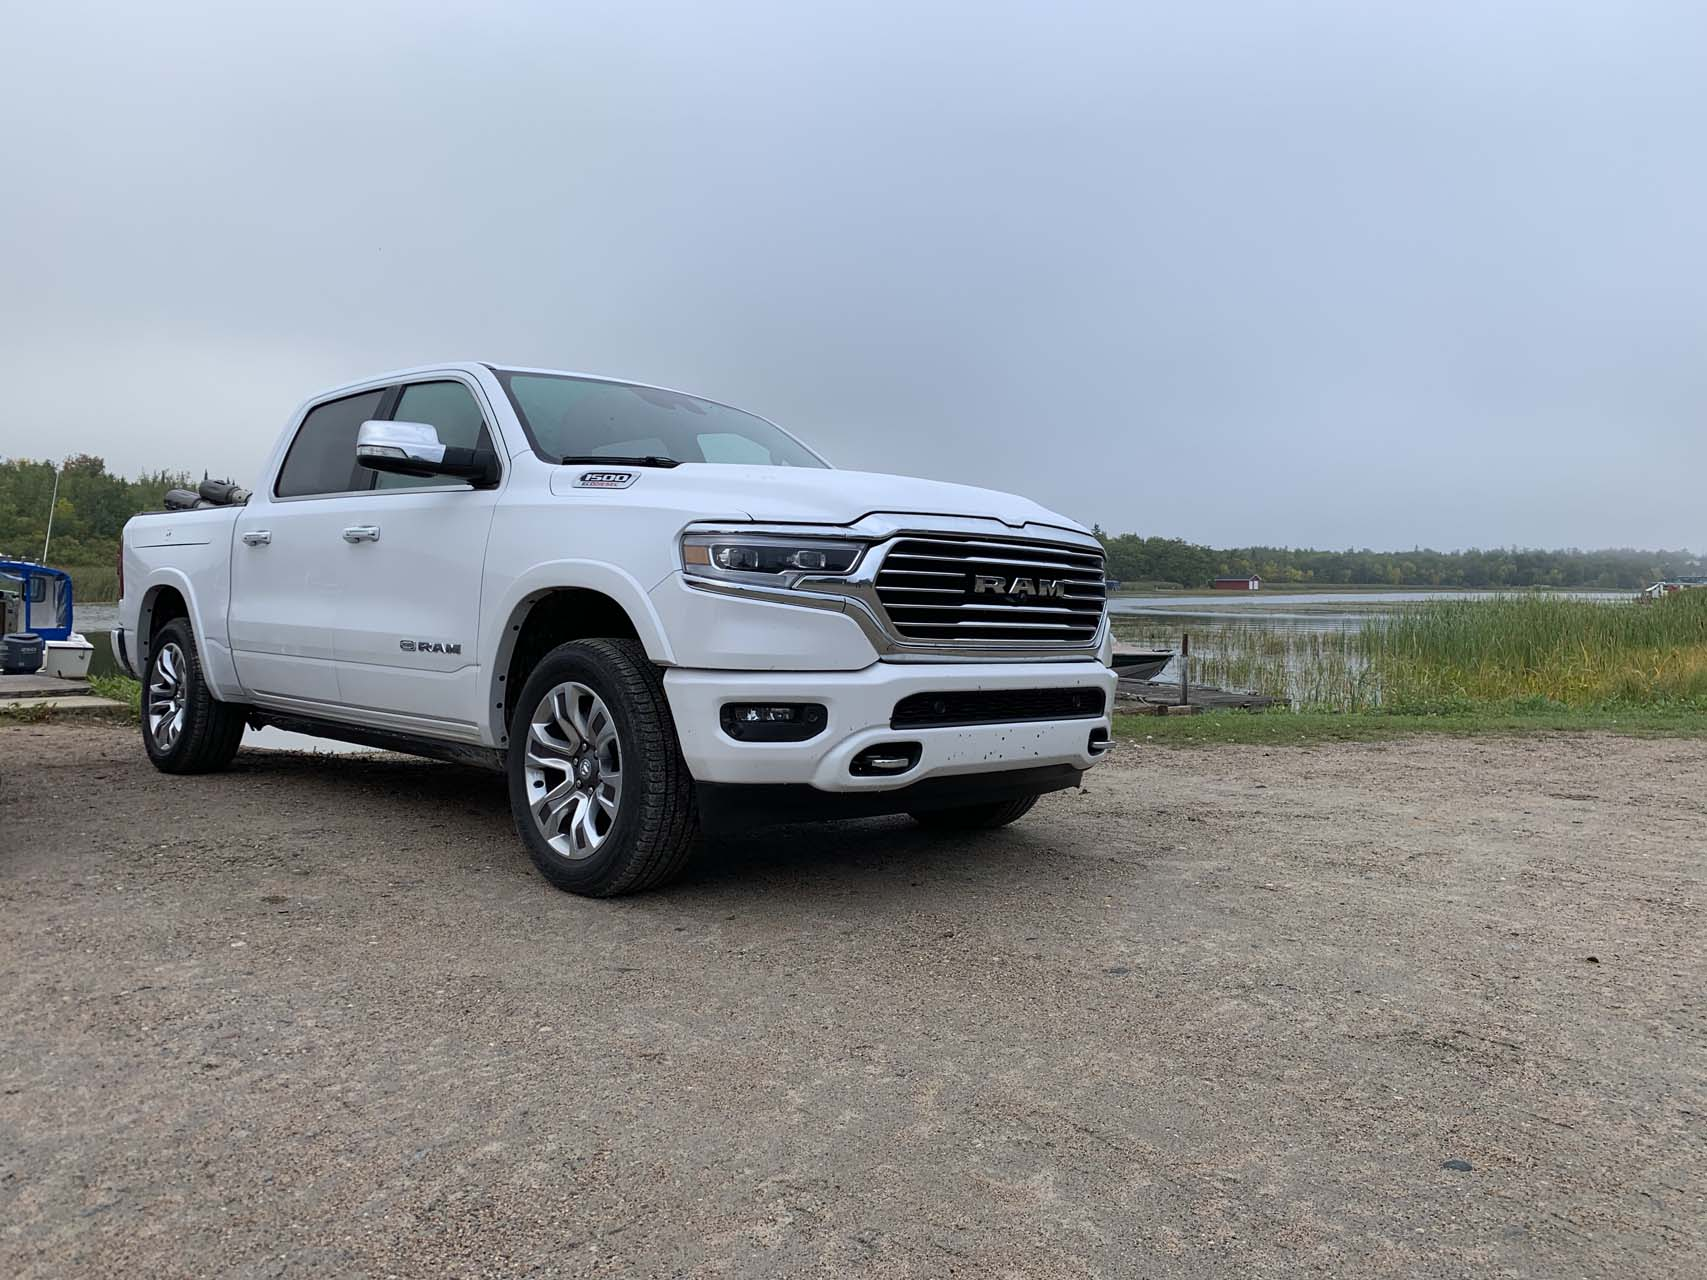 2020 Ram 1500 Ecodiesel Rated Up To 32 Mpg Highway By Epa Still Trails Chevy